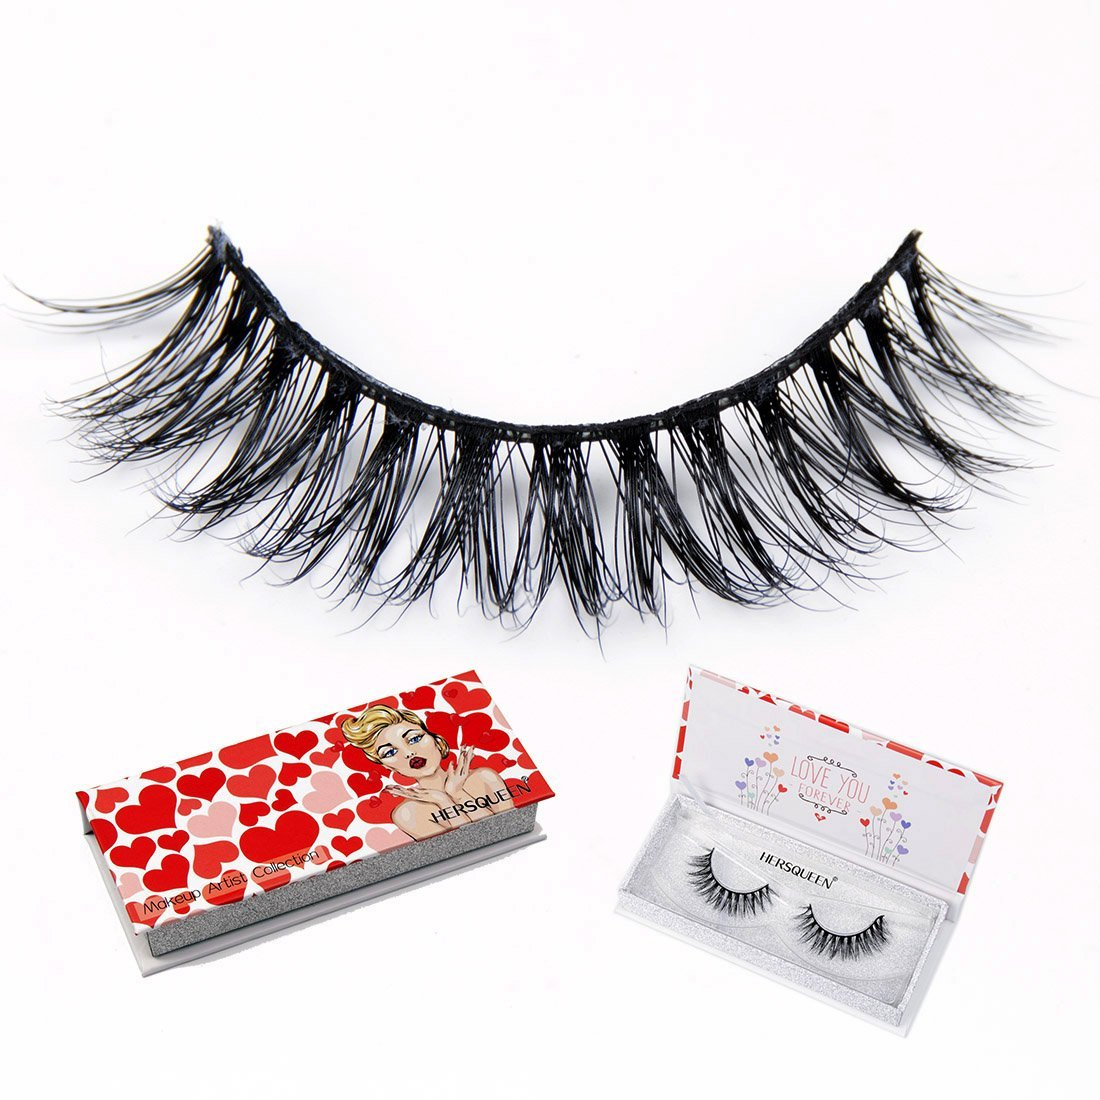 8c7fce68562 3D Mink Lashes Strip For High End Makeup With Gift Box 100% Siberian Mink  Fur